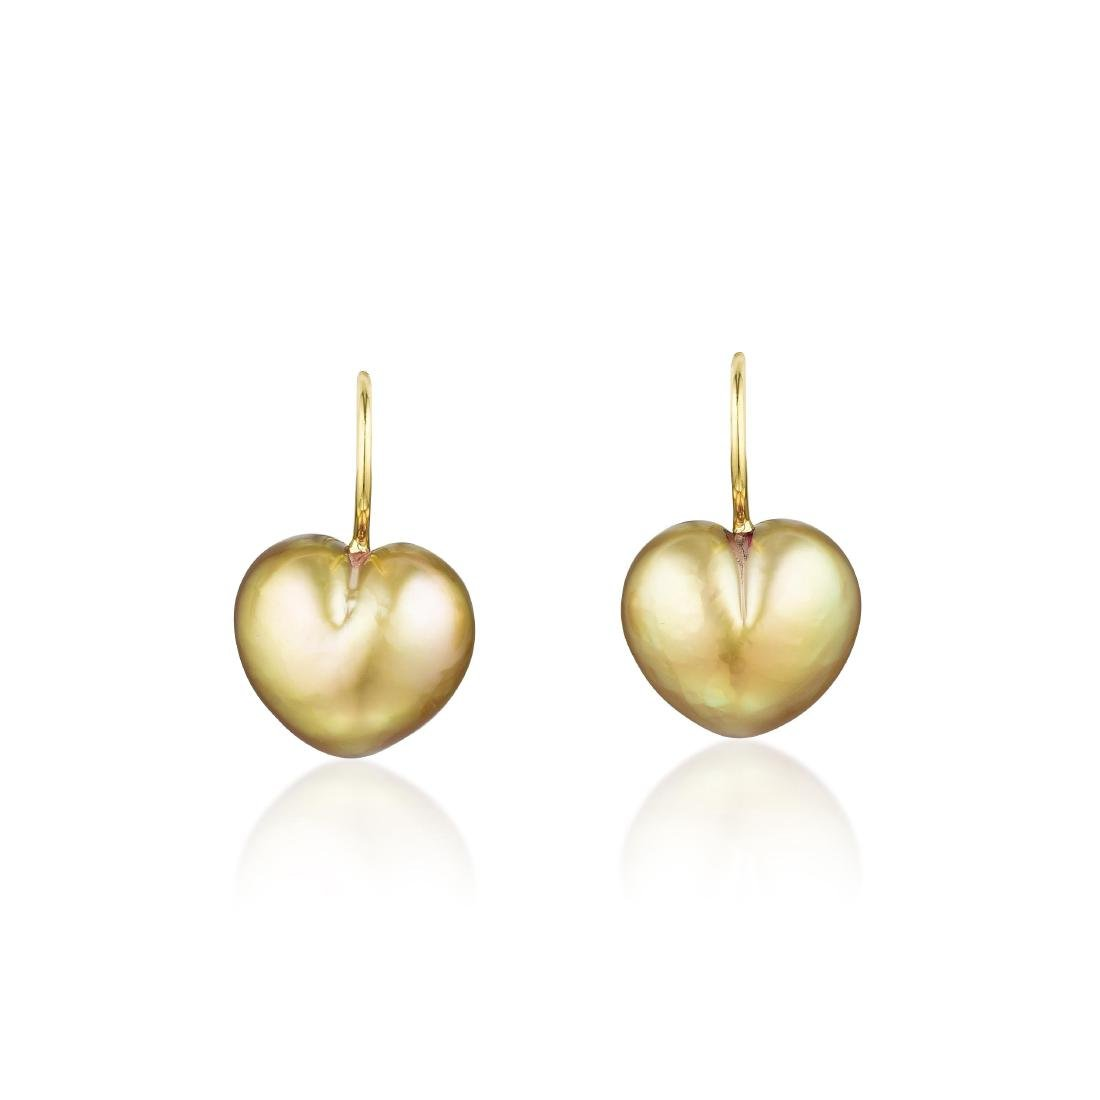 A Pair of 18K Gold Cultured Pearl Earrings